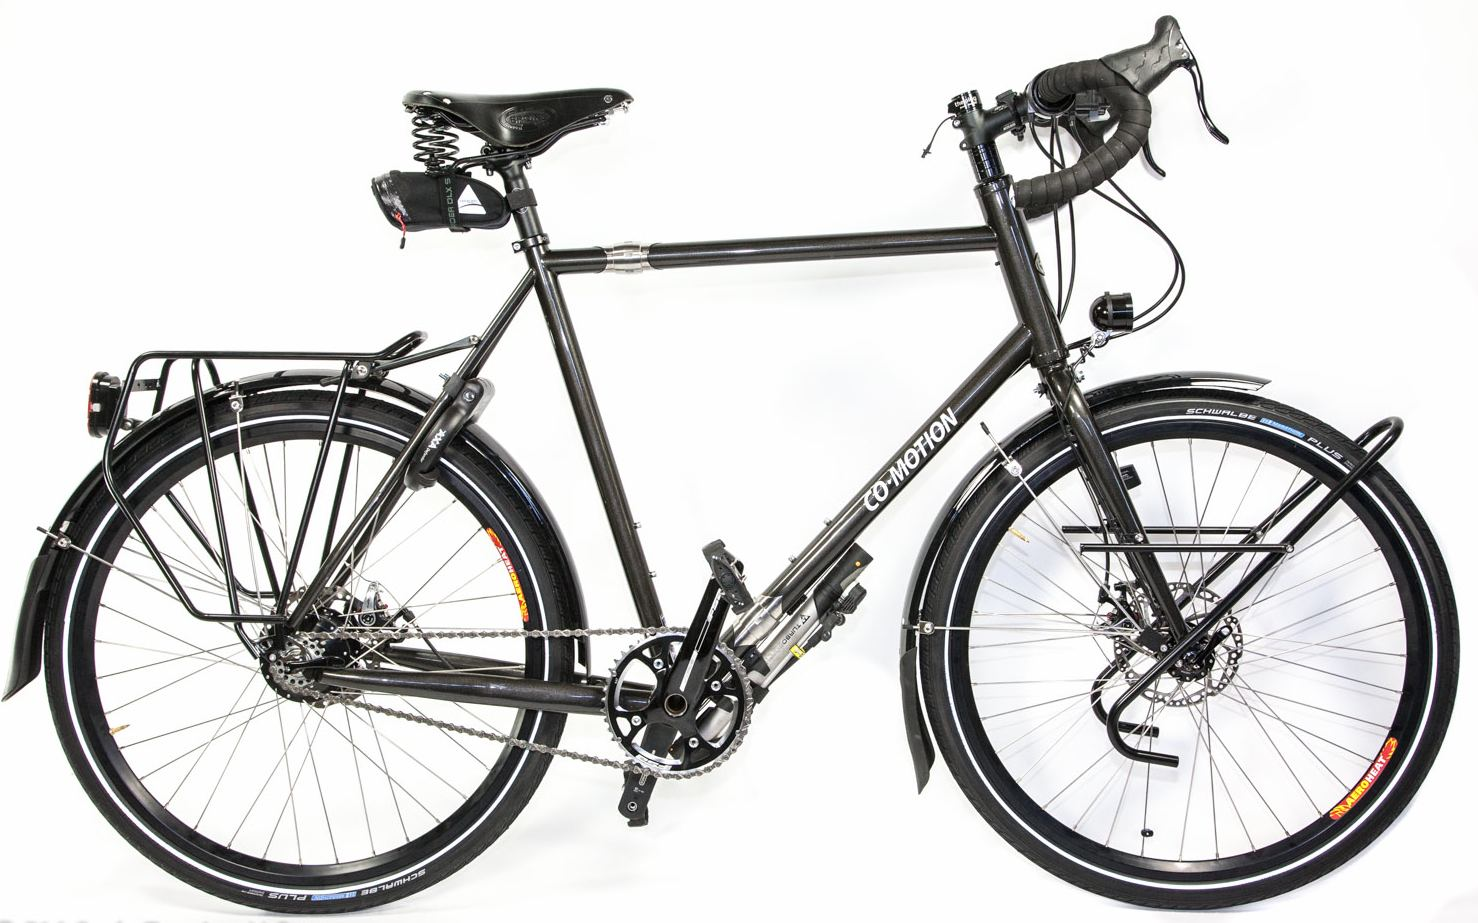 Complete List of Off-Road Adventure Touring Bikes with